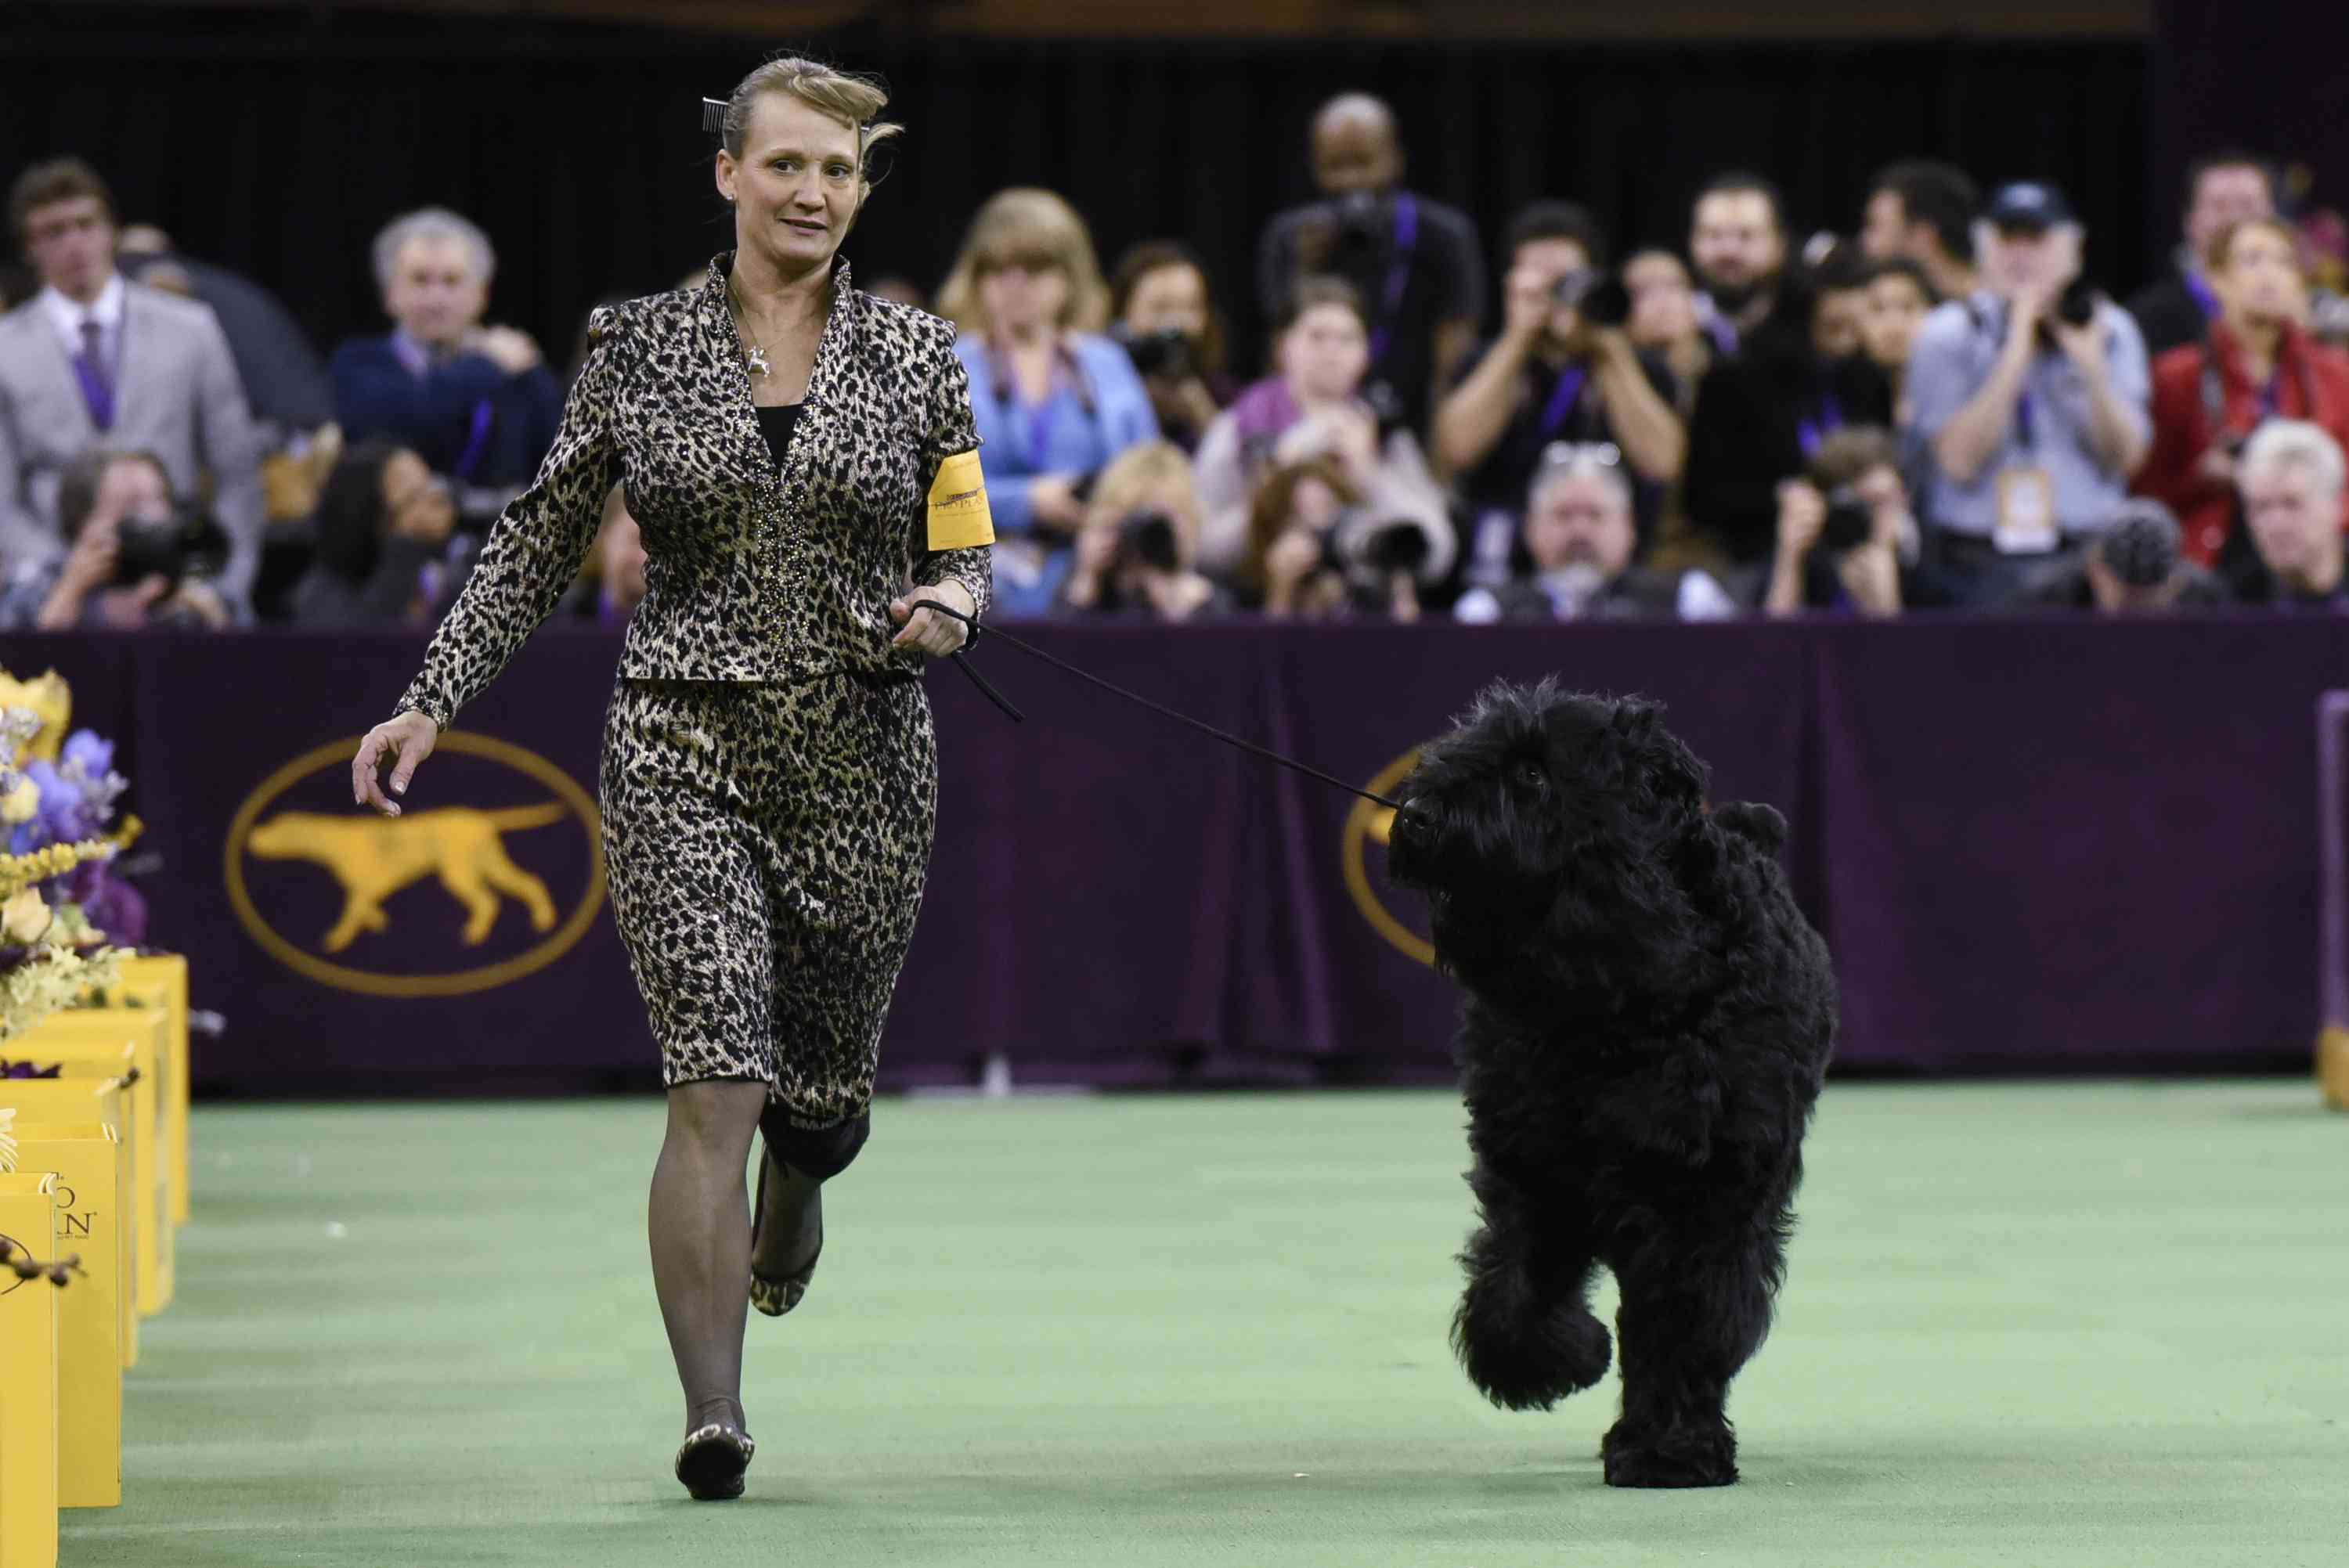 A Black Russian Terrier competes in the Working Group at the 140th Annual Westminster Kennel Club Dog Show at Madison Square Garden on February 16, 2016 in New York City